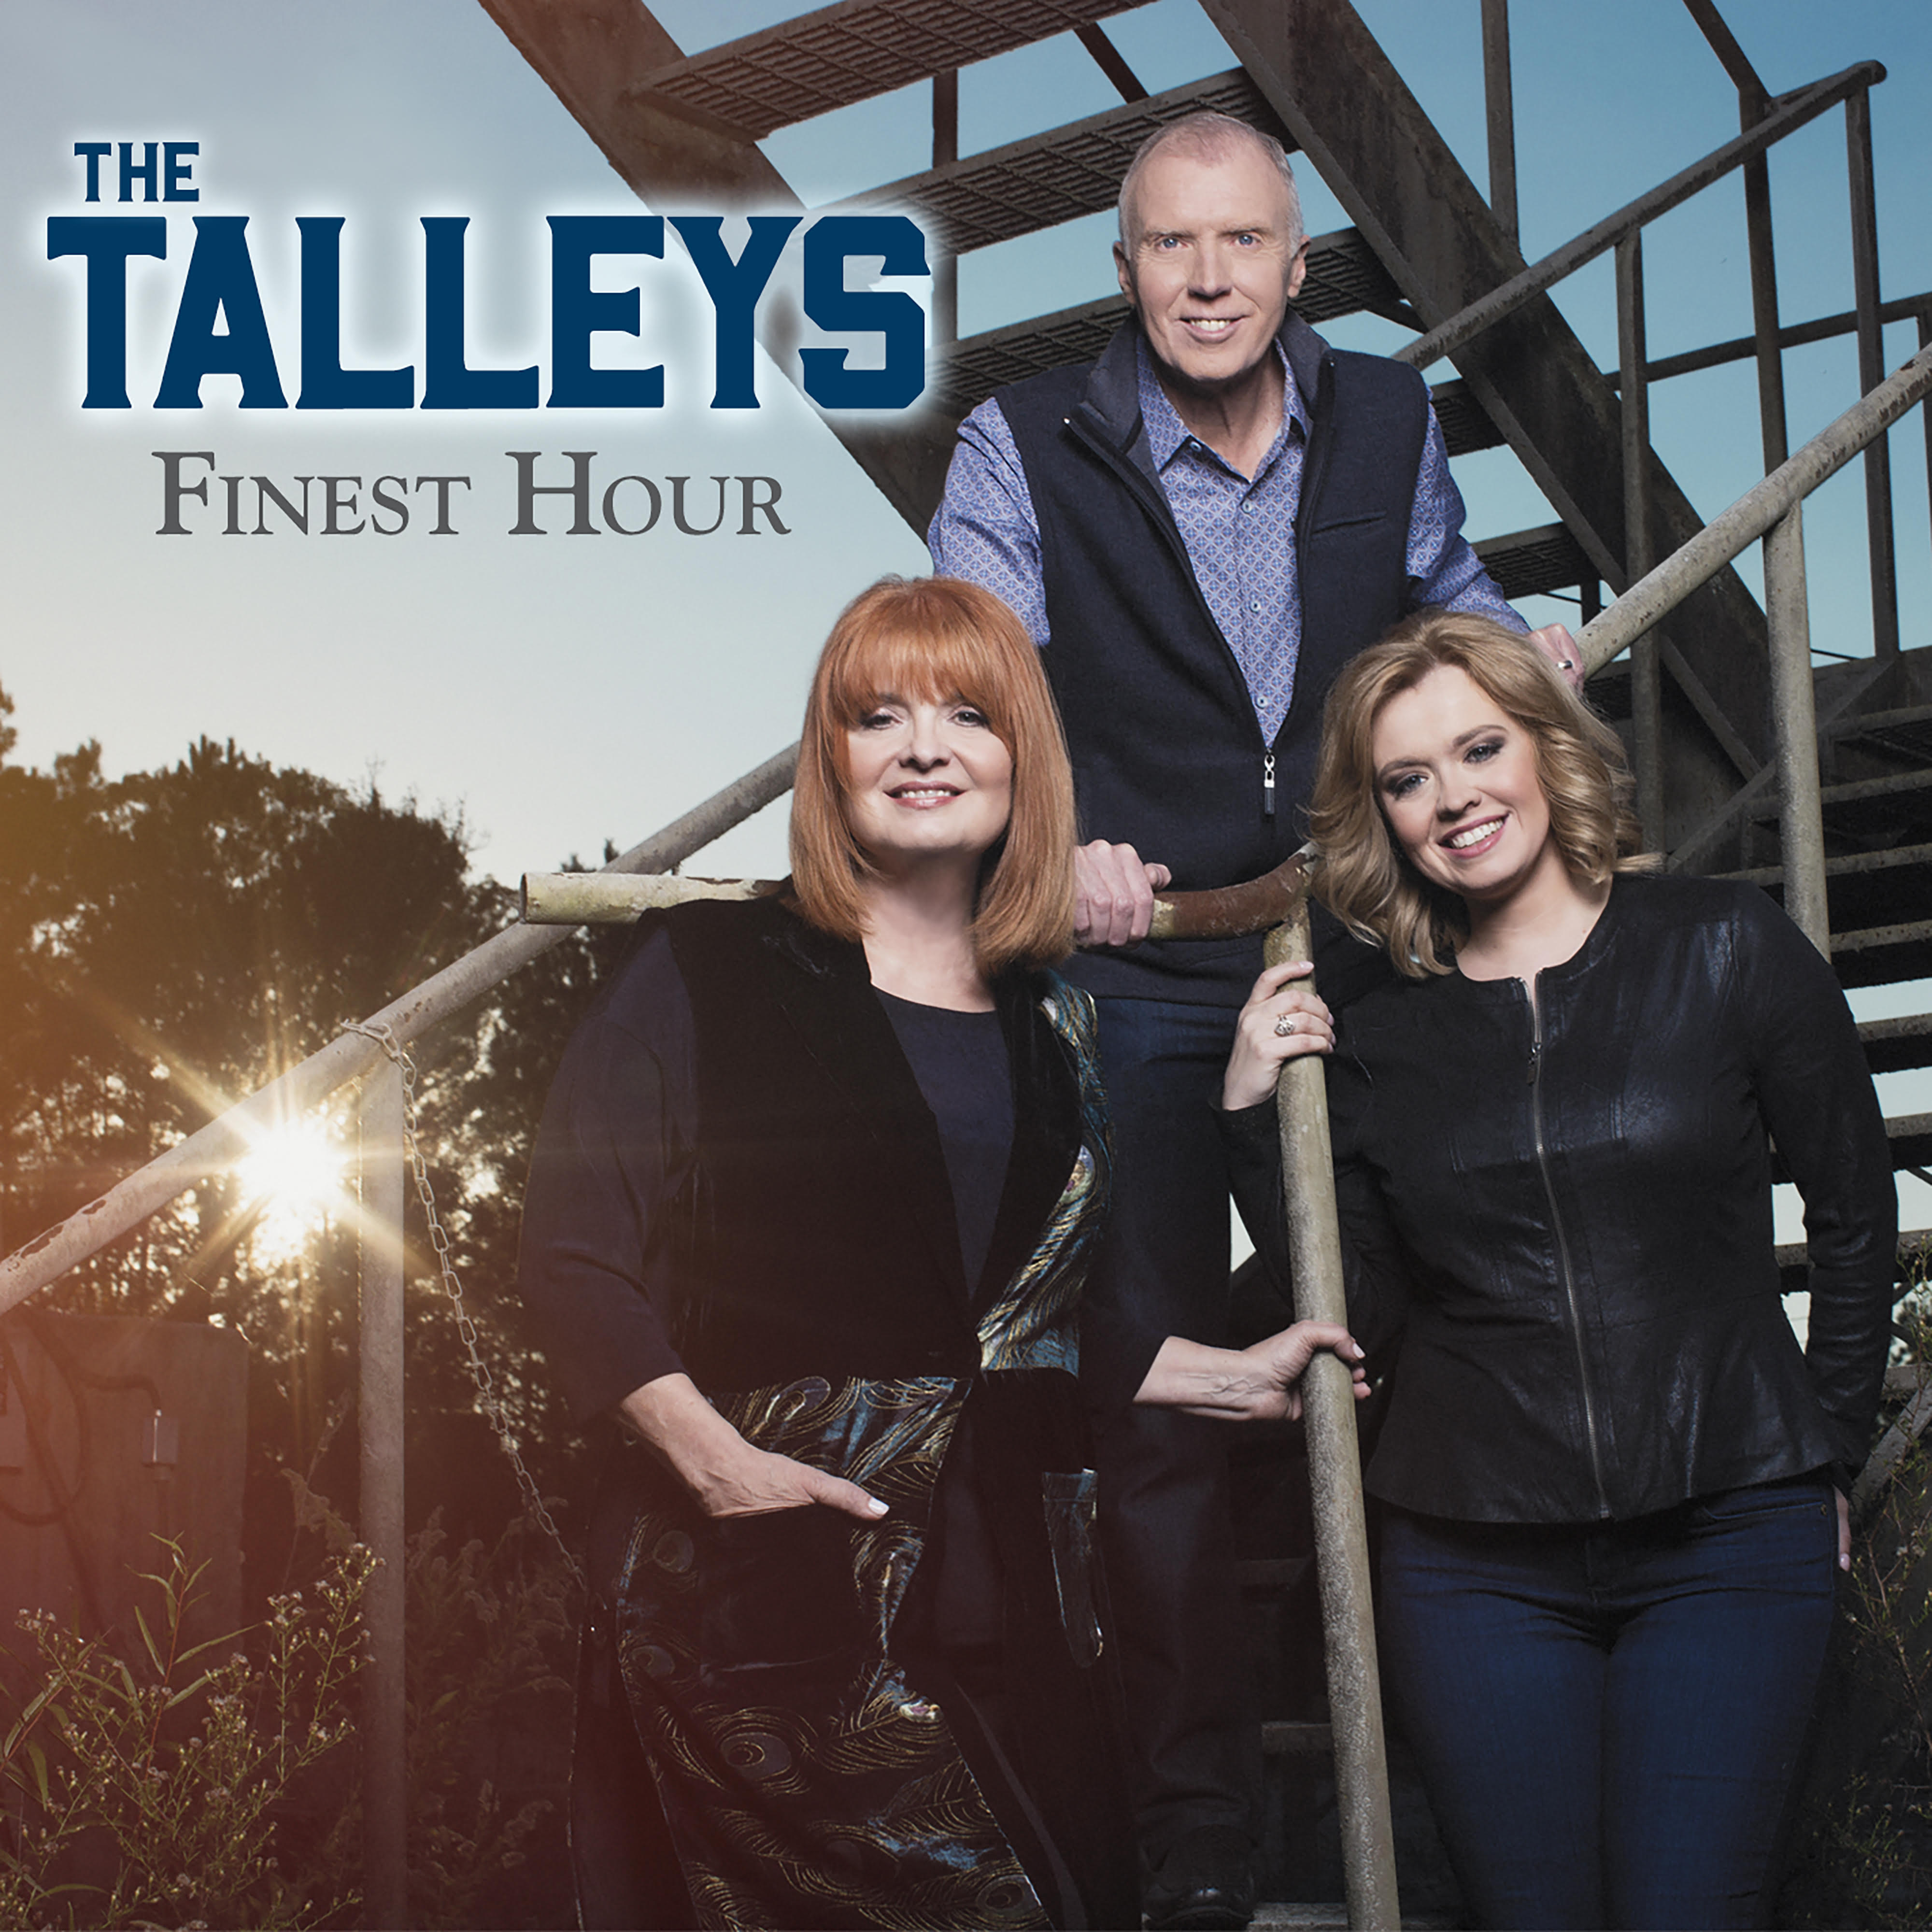 The Talleys, Finest Hour